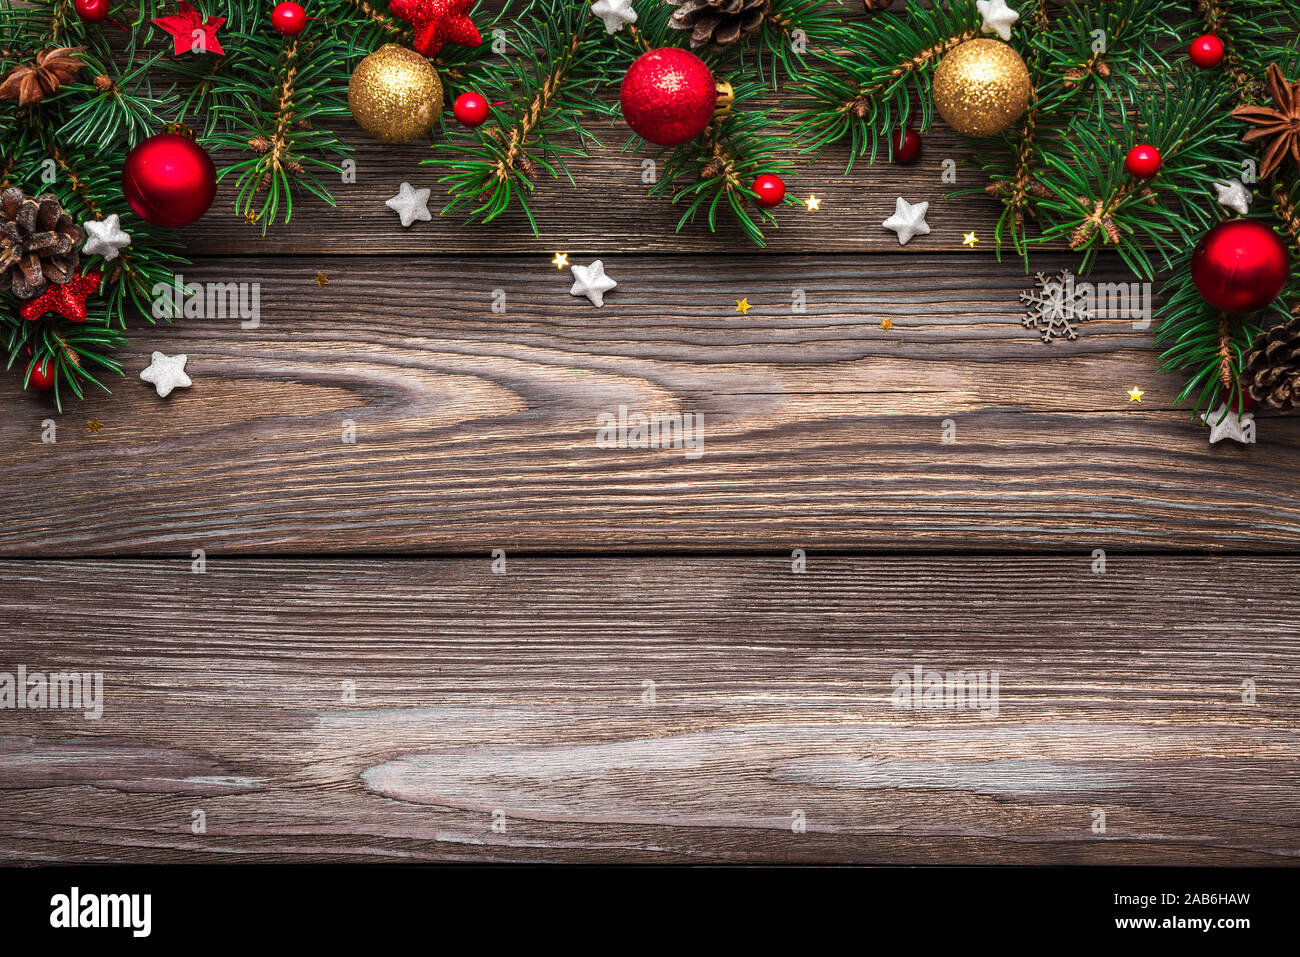 Christmas And Happy New Year Background Fir Tree Branches And Red With Gold Holiday Decorations On Rustic Wooden Table Top View Flat Lay With Copy Stock Photo Alamy